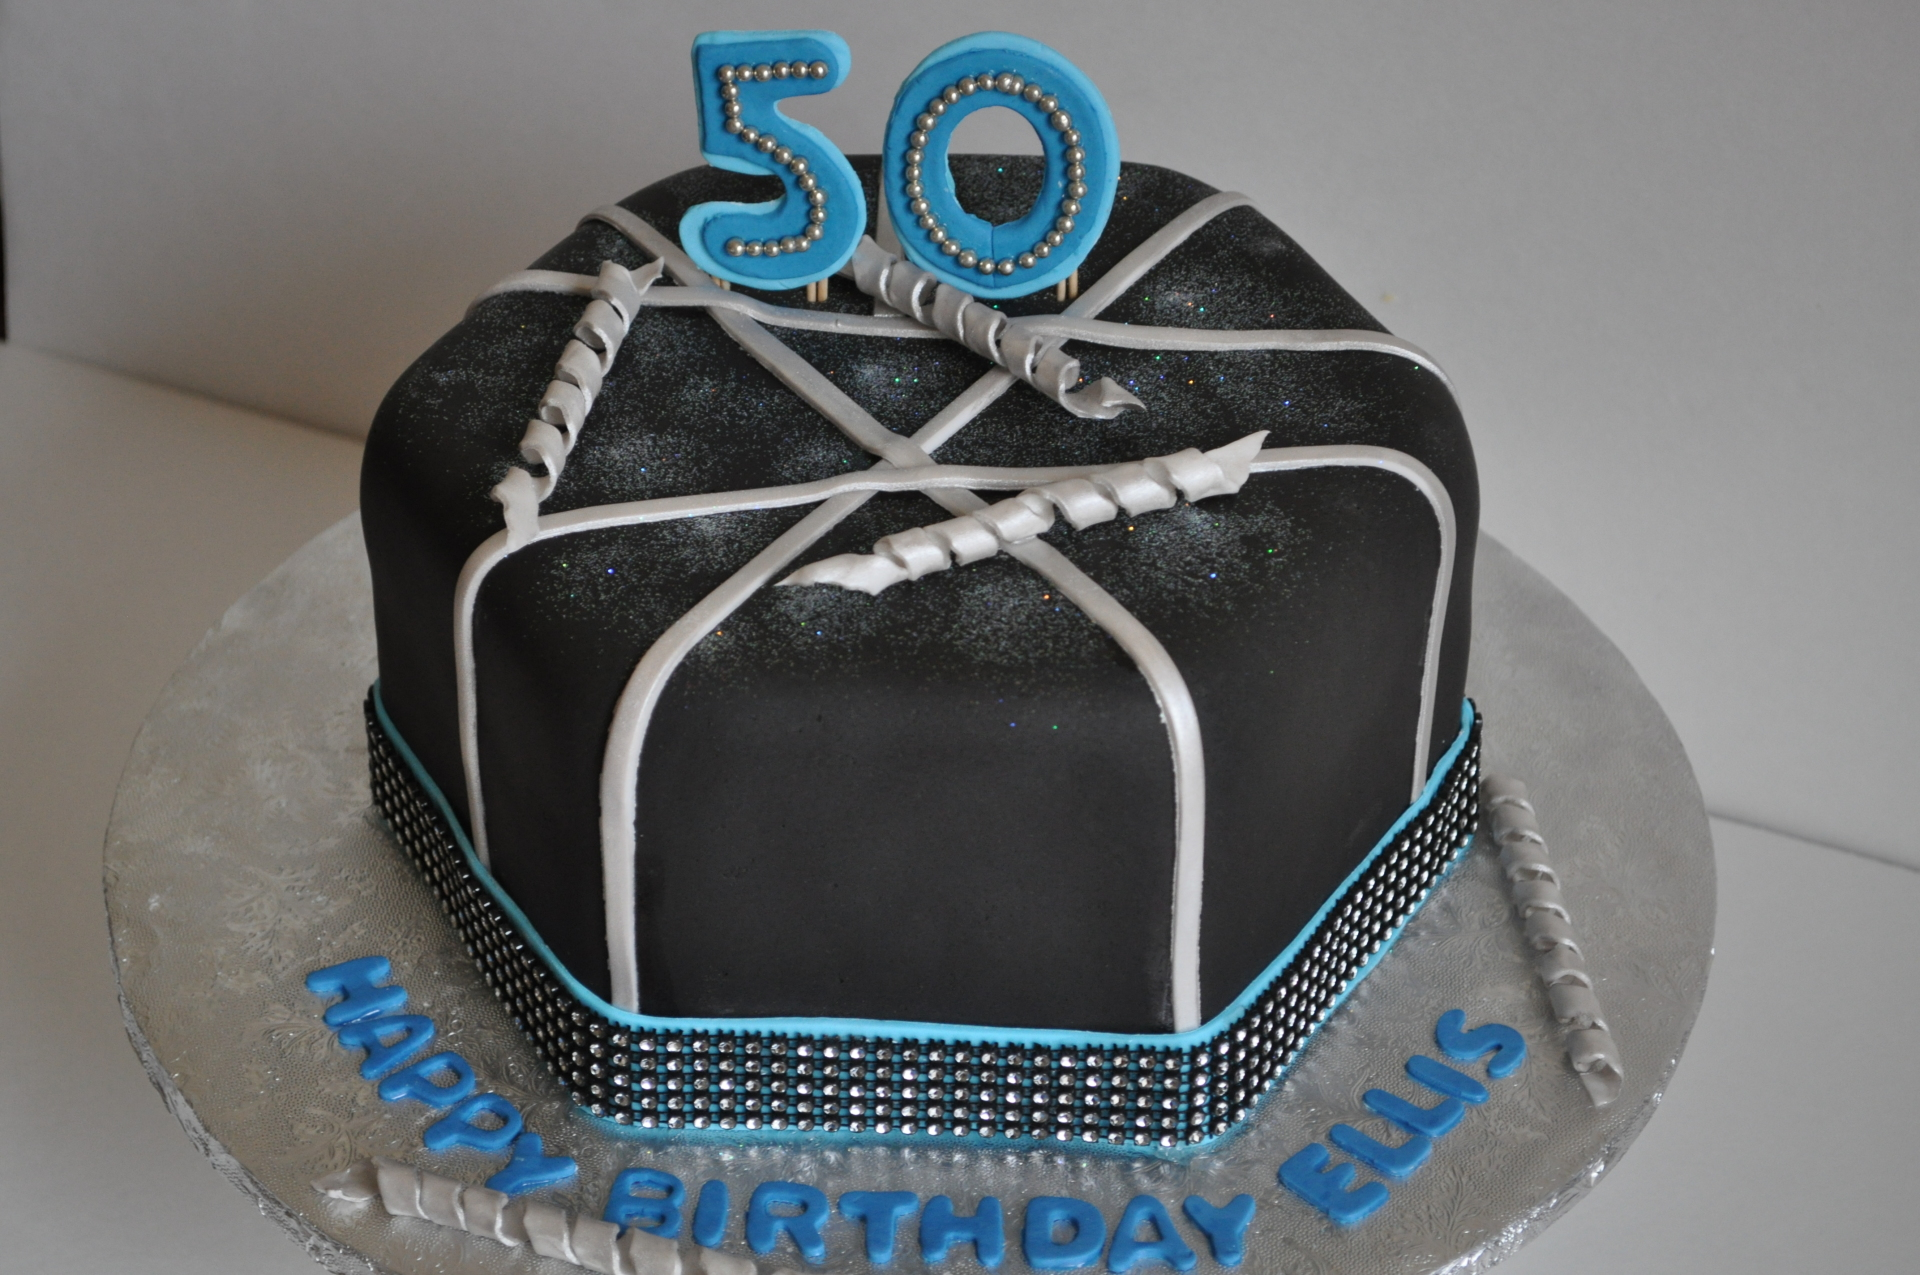 50th birthday cake, hexagon cake